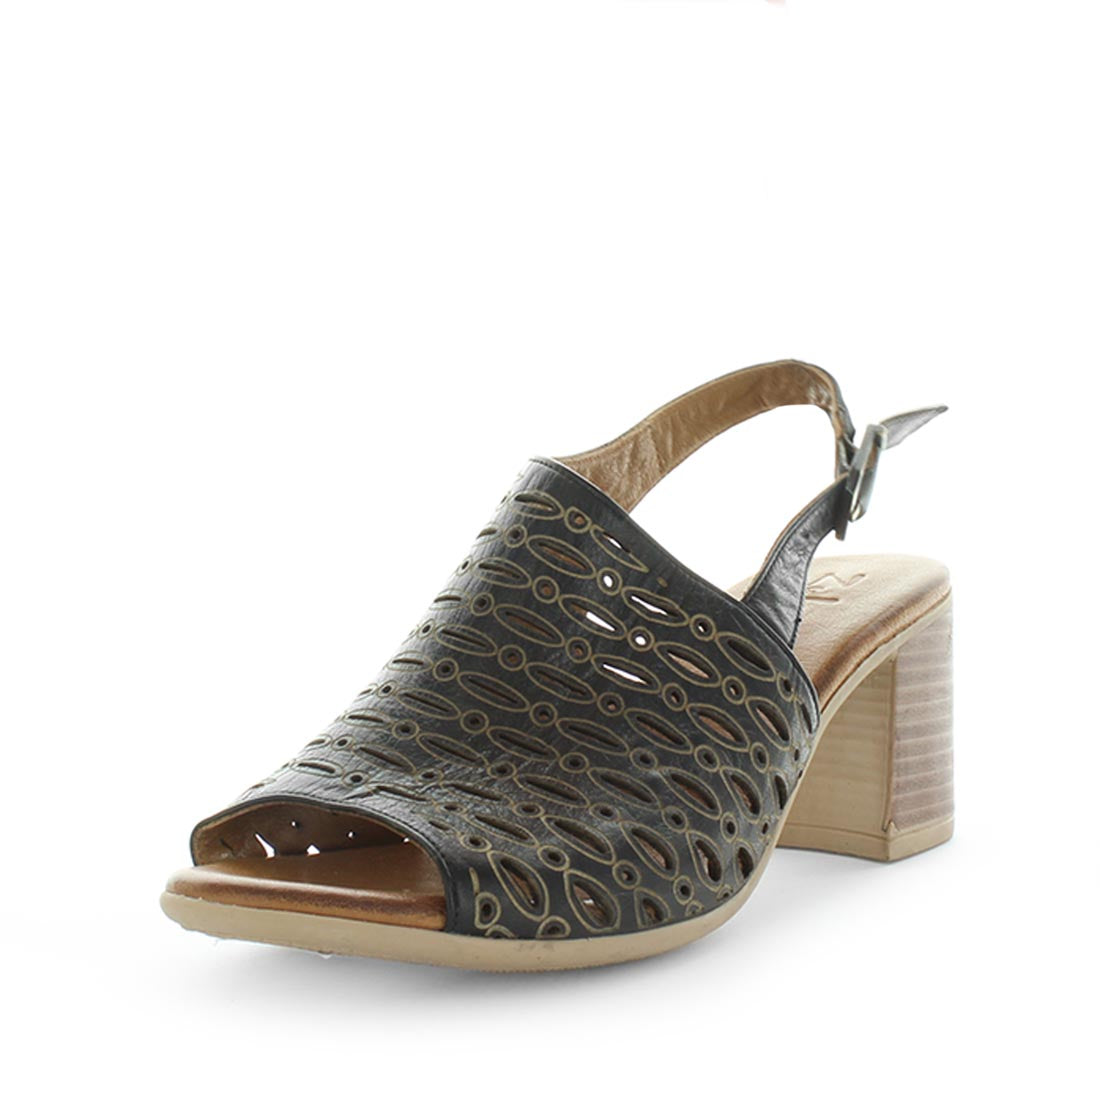 HAMES by ZOLA - iShoes - NEW ARRIVALS, What's New, What's New: Women's New Arrivals, Women's Shoes, Women's Shoes: European, Women's Shoes: Heels, Women's Shoes: Sandals - FOOTWEAR-FOOTWEAR